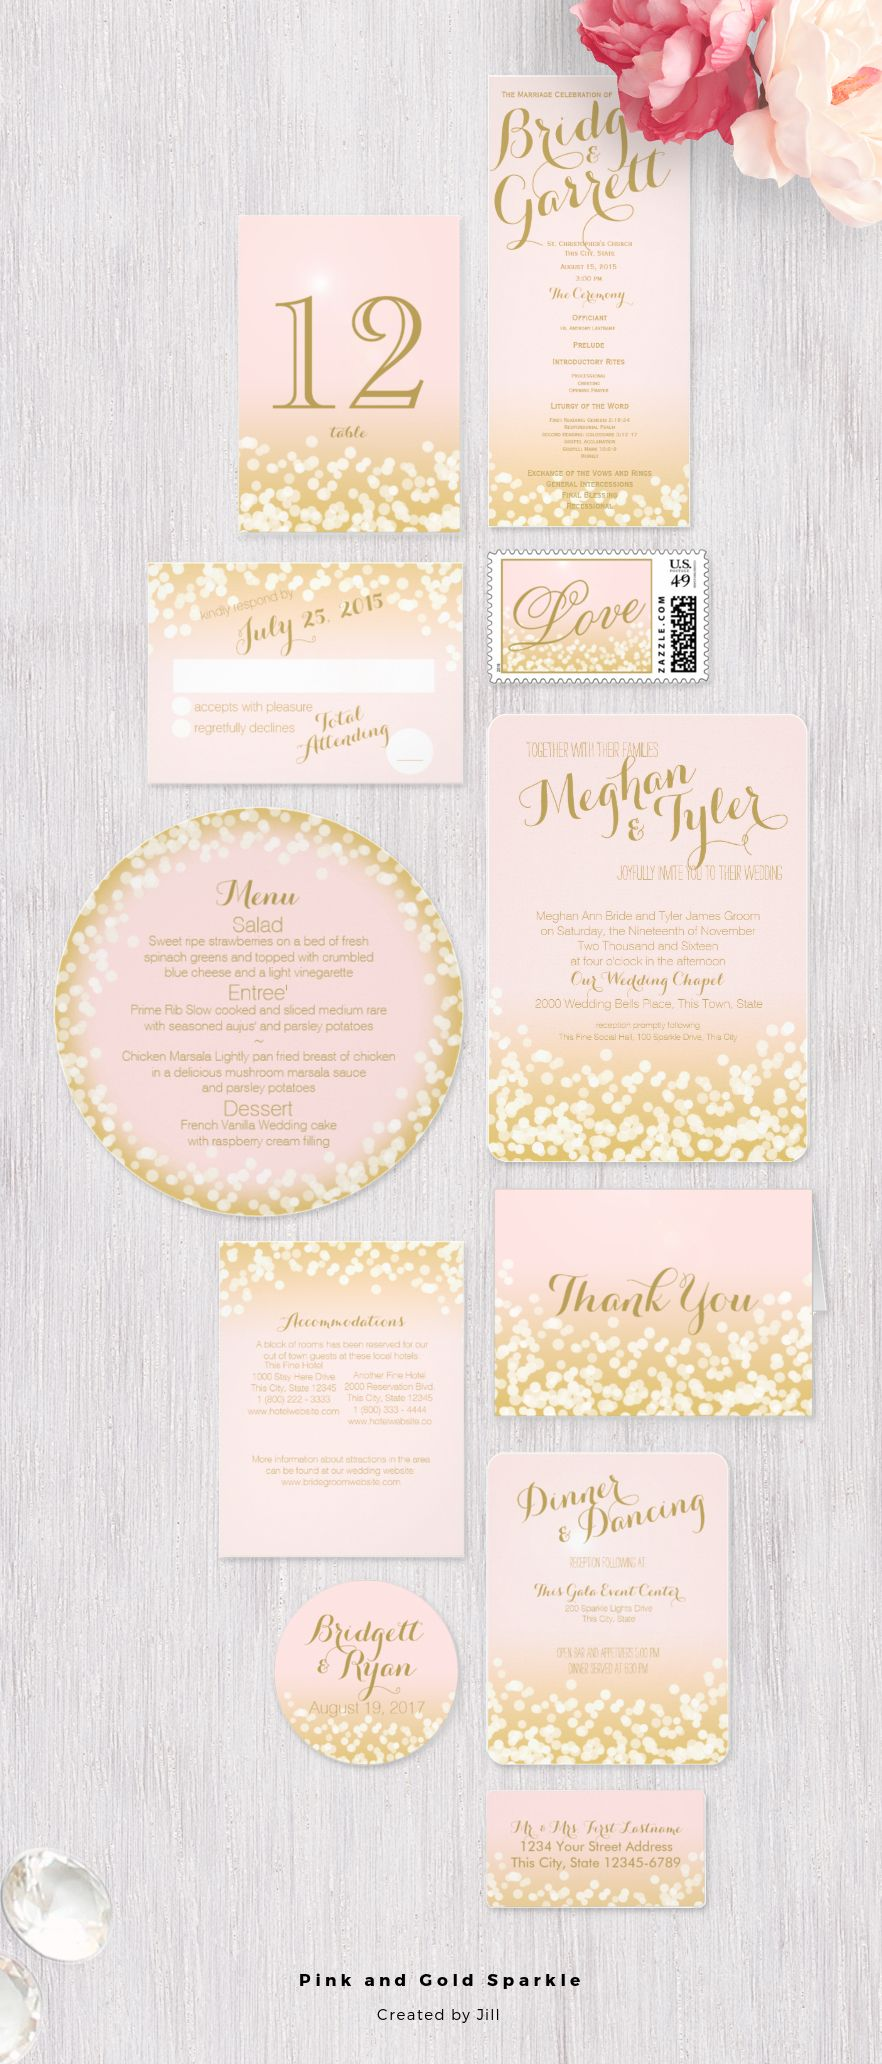 pink and gold sparkle light effect wedding invitation design suite